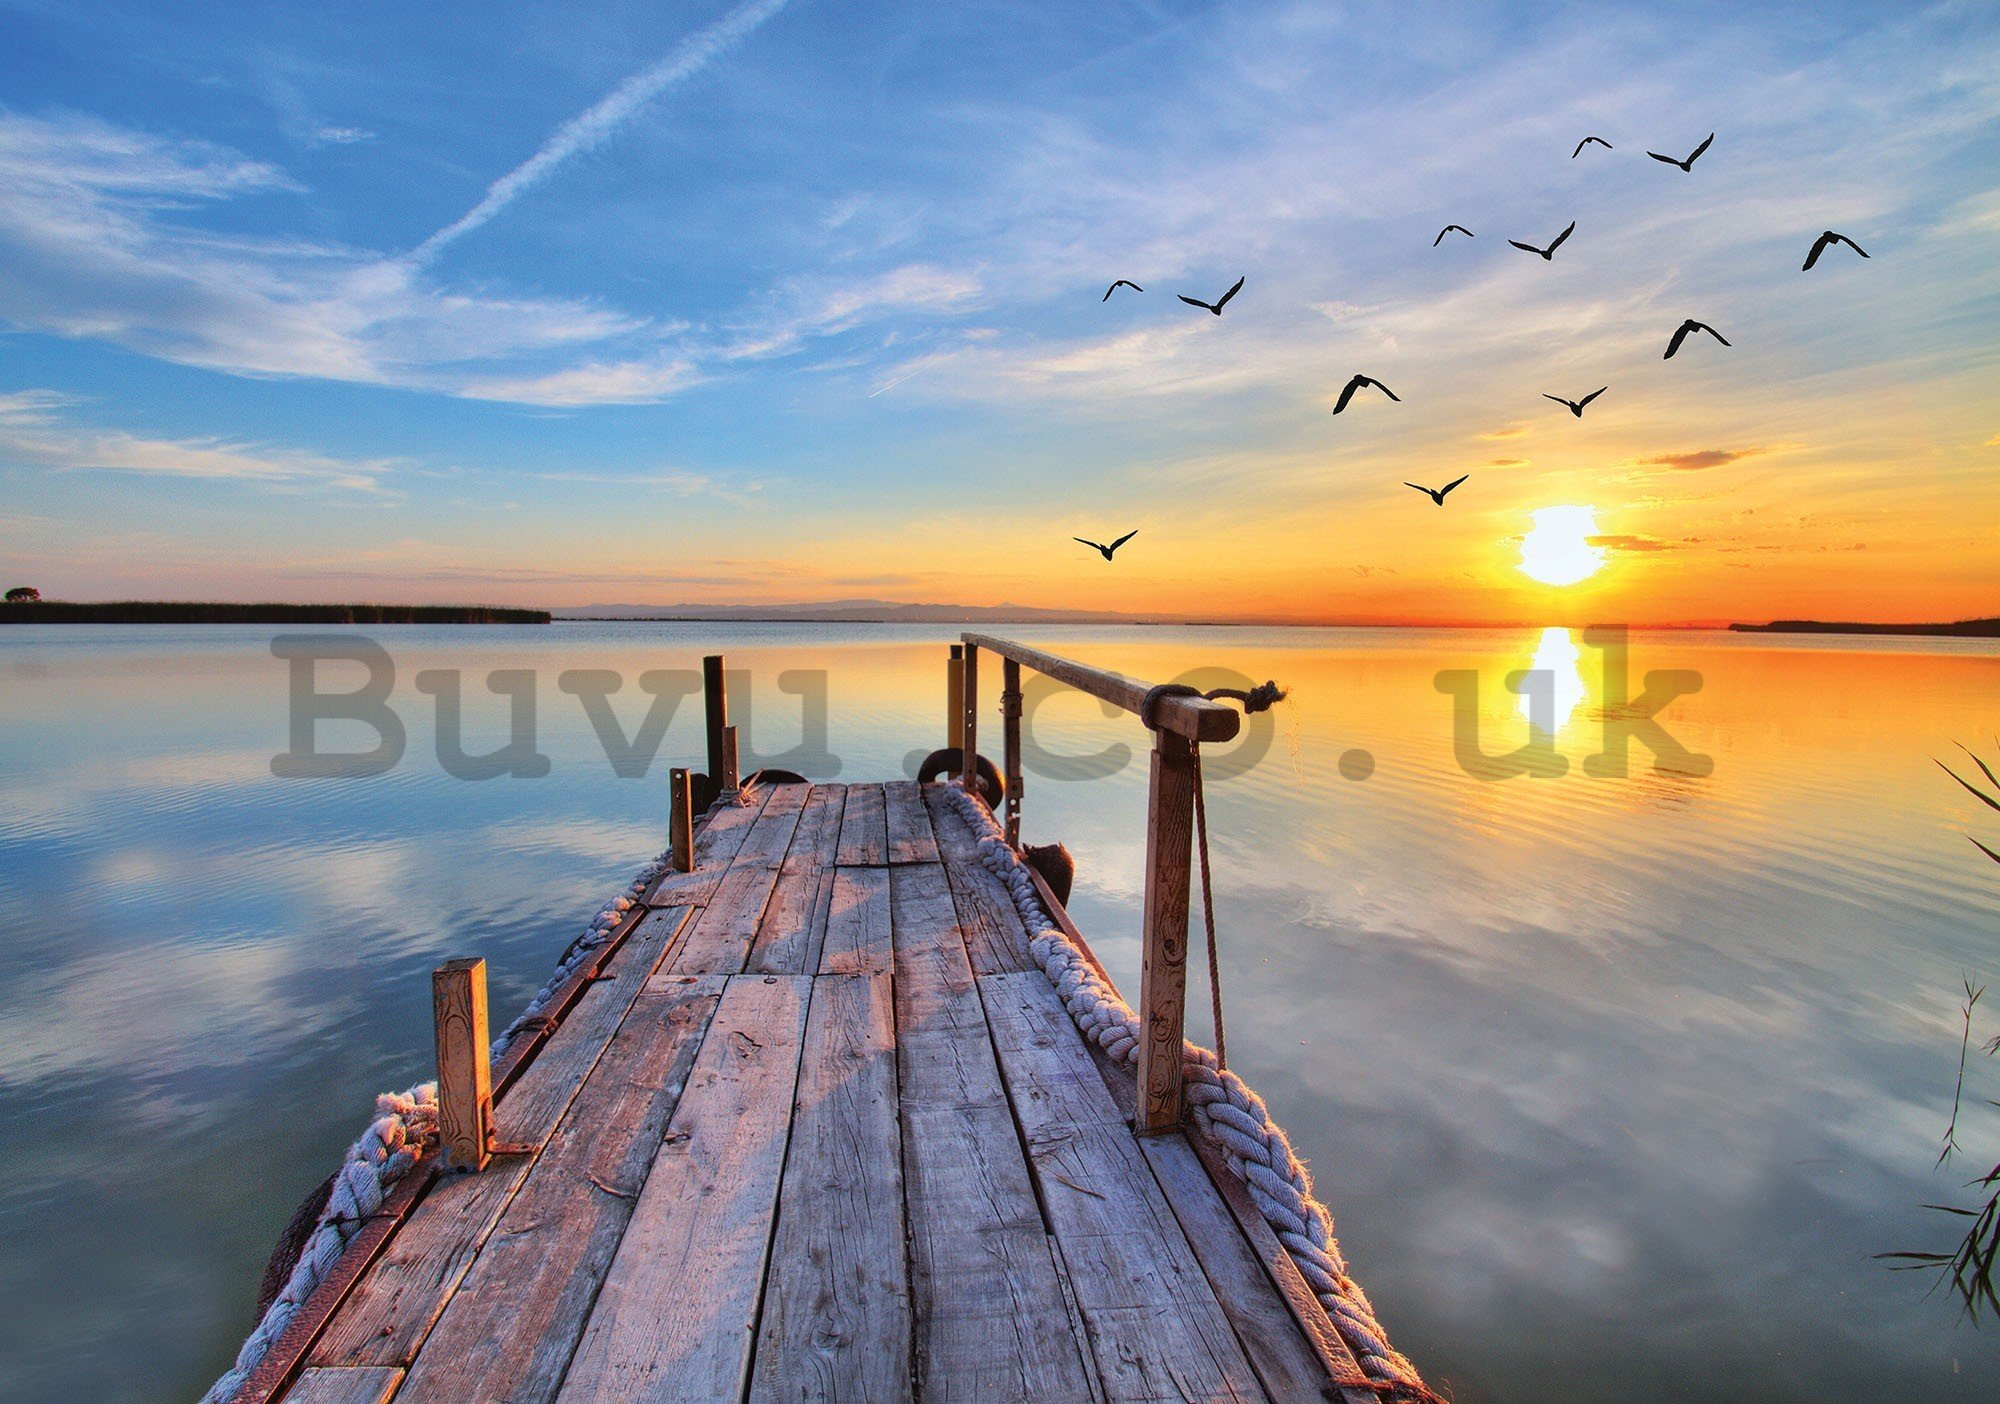 Wall mural vlies: A pier at sunset - 416x254 cm